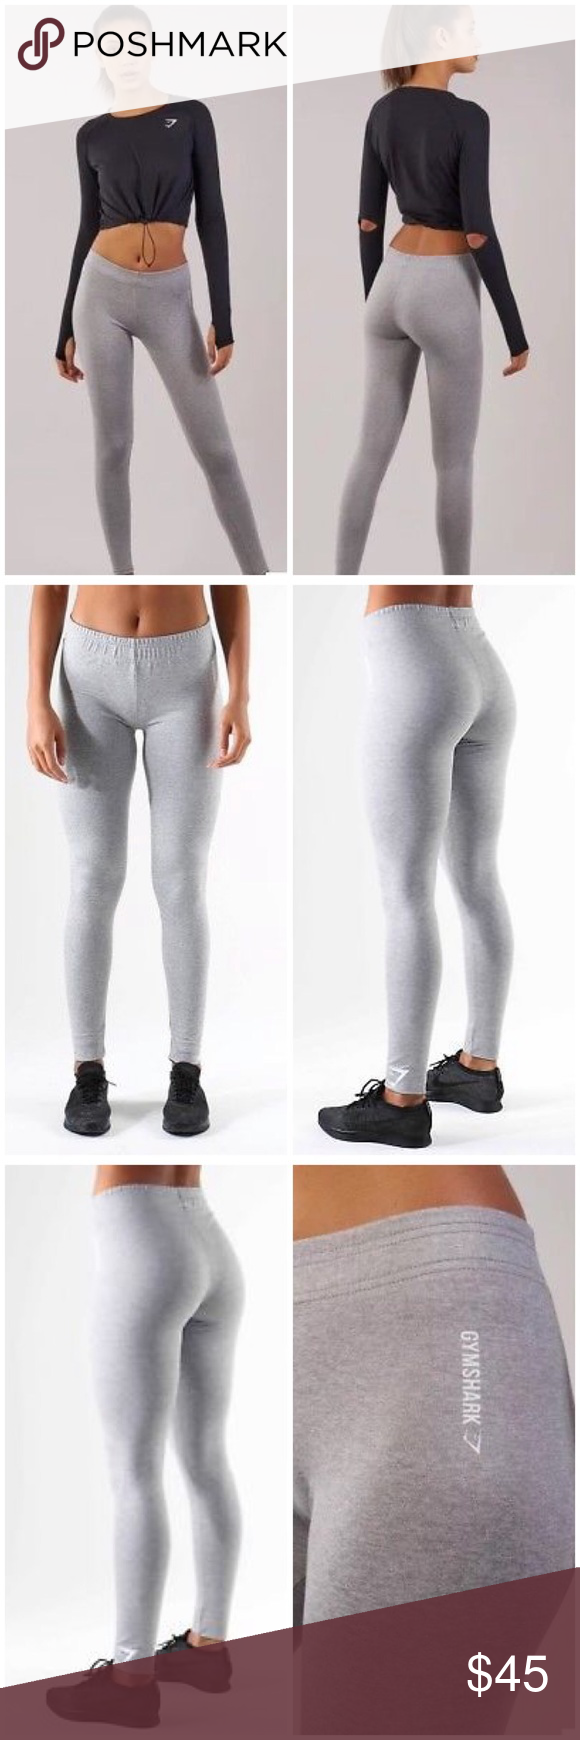 a7ed416728a71b Gymshark Ark Jersey Leggings Light Grey Marl Small Item specifics  Condition: New with tags: in bag Brand: Gymshark Size: S Size Type: Regular  Main Colour: ...